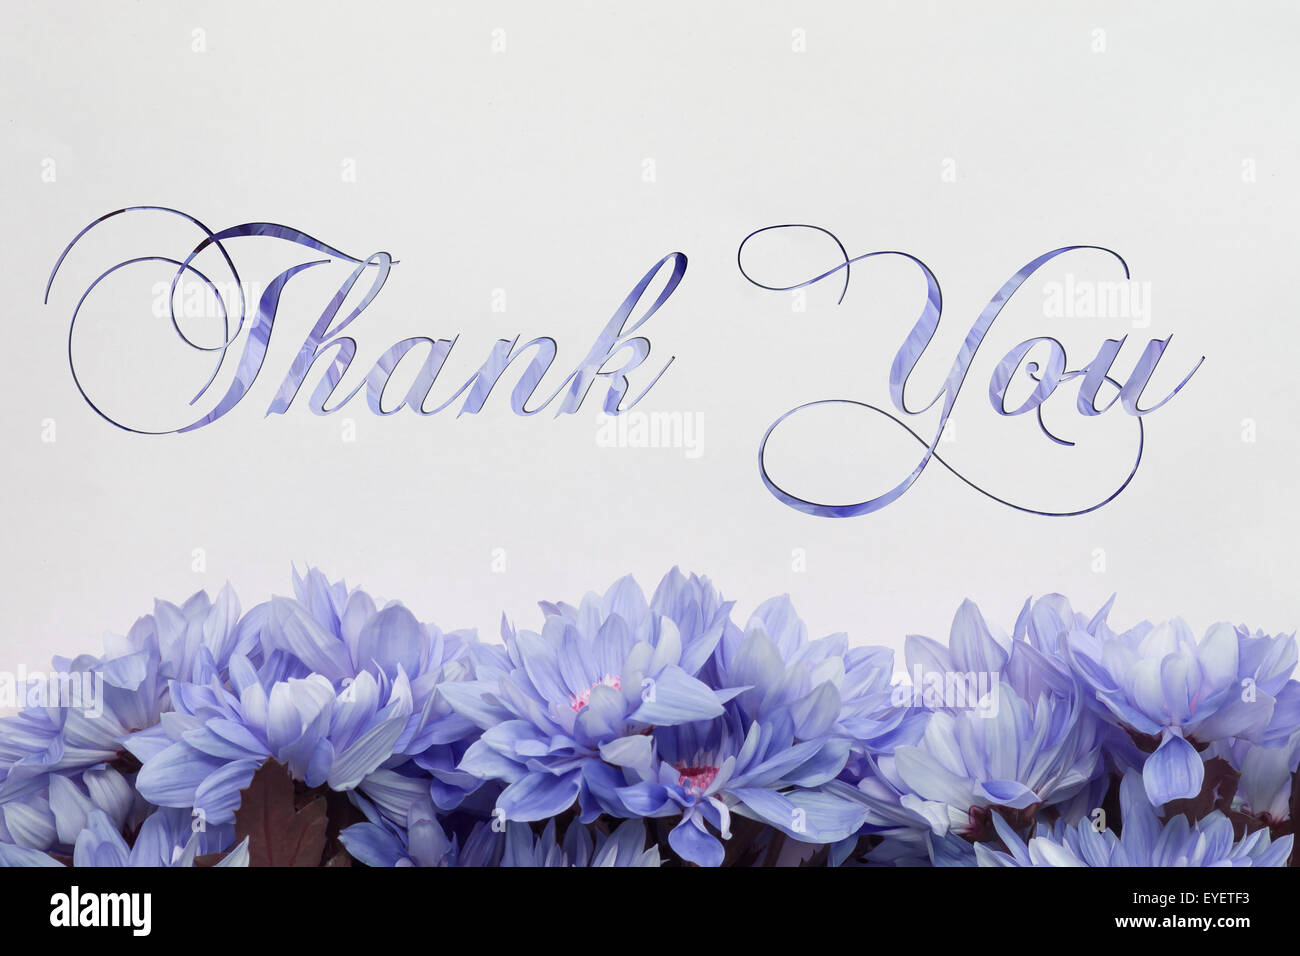 Thank you flowers and beautiful handwriting greeting card stock thank you flowers and beautiful handwriting greeting card m4hsunfo